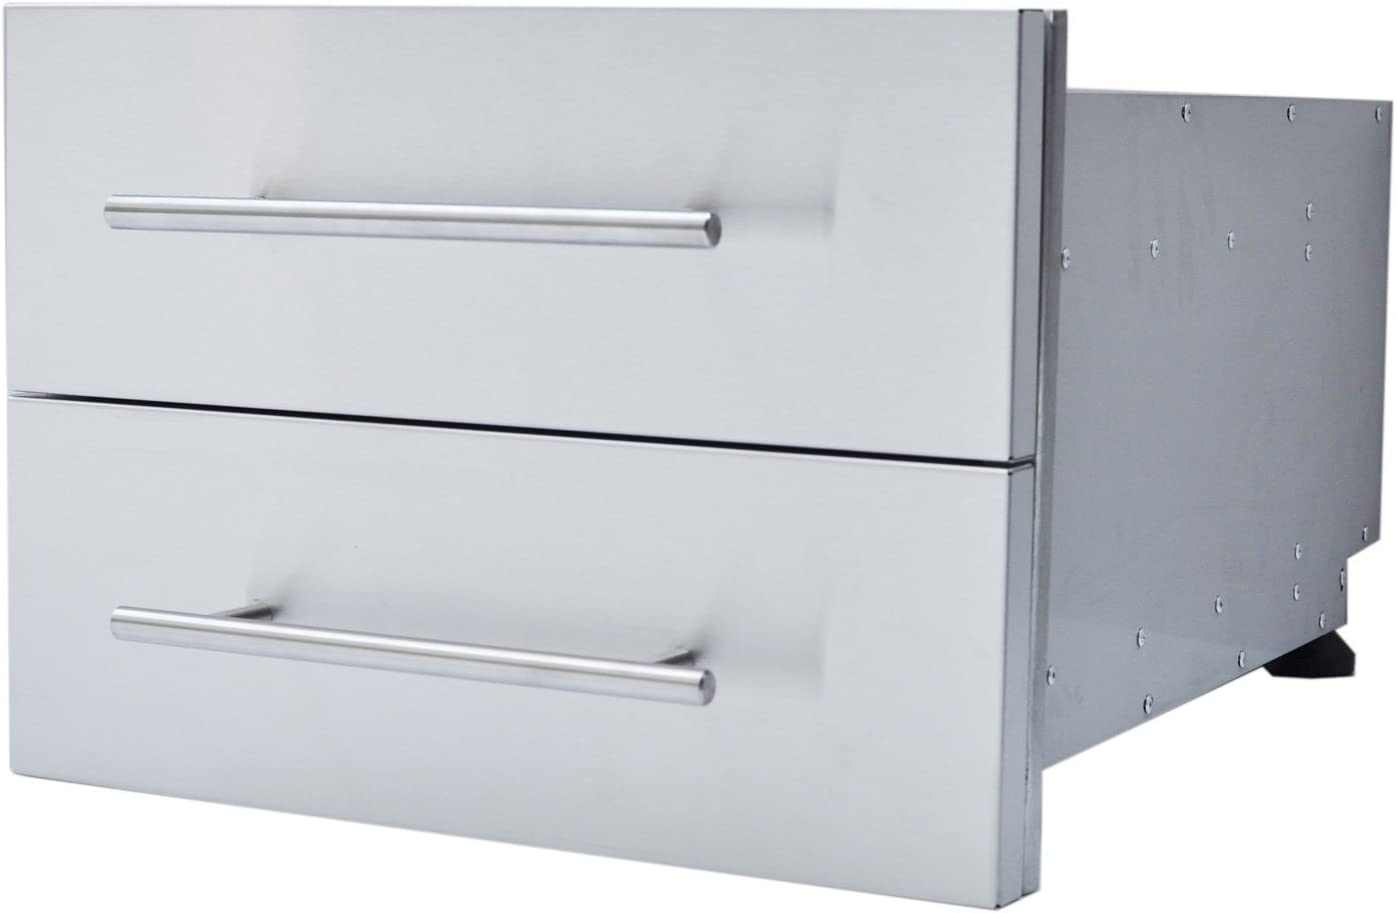 "SUNSTONE DE-DD13 Designer Series Raised Style Height Double Drawer, 18"" x 13"", Stainless Steel"